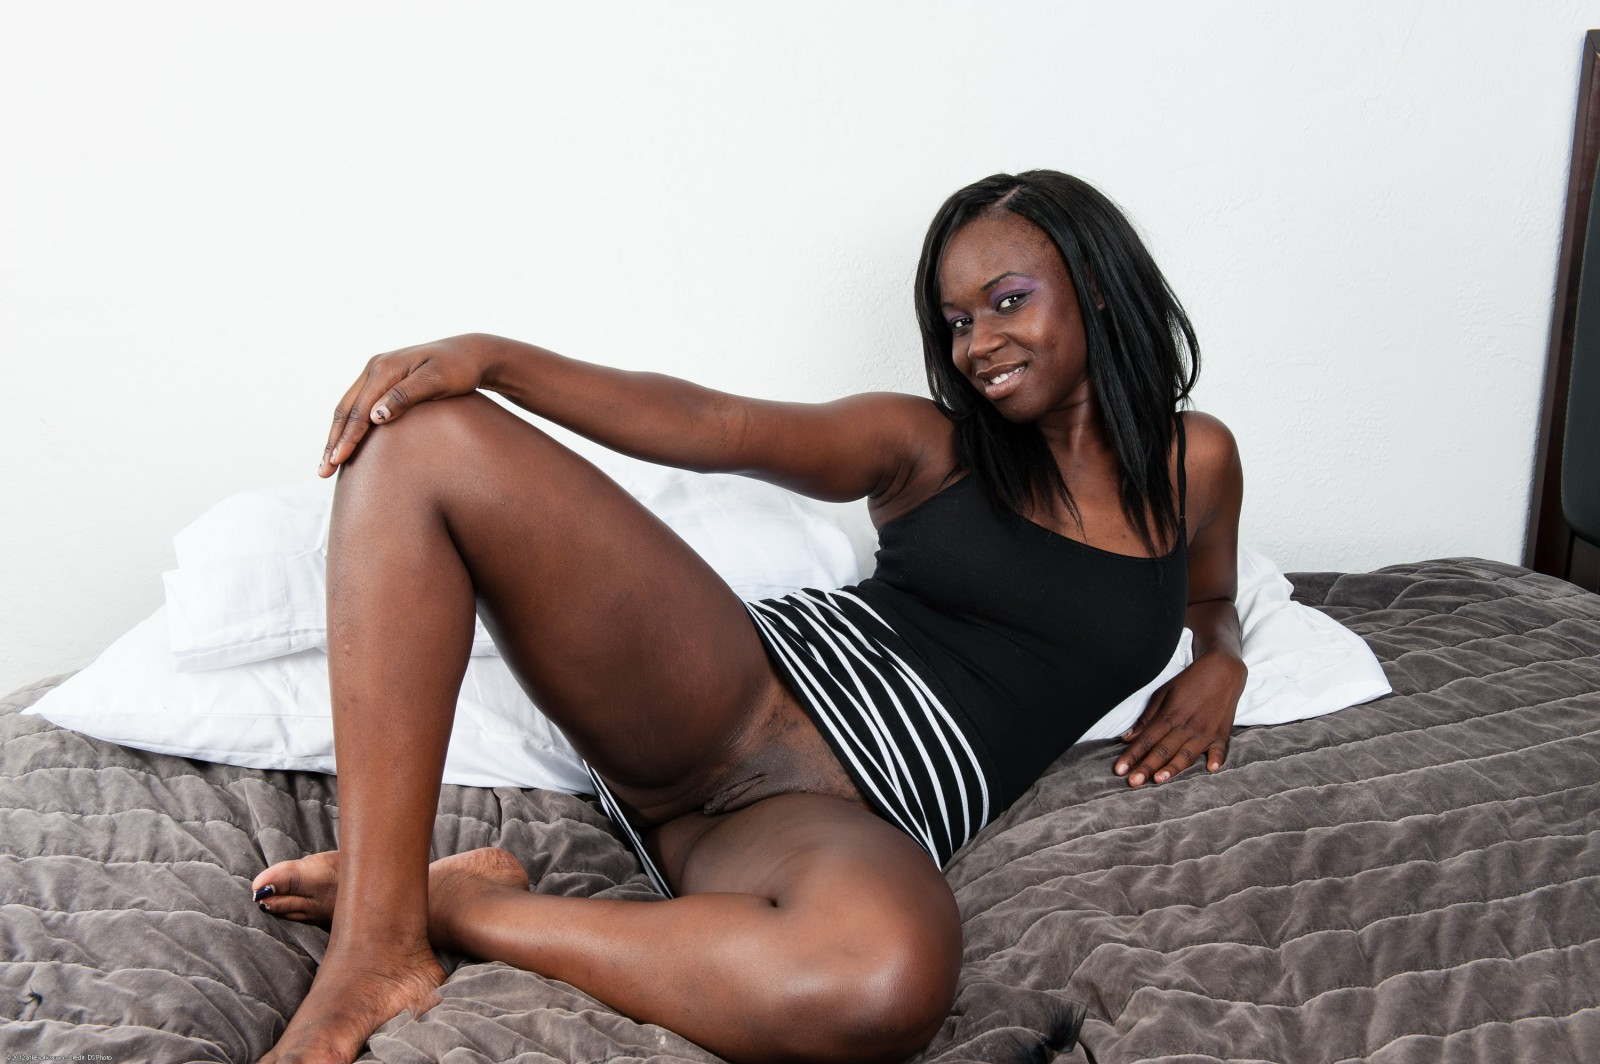 black south africa pussy woman naked